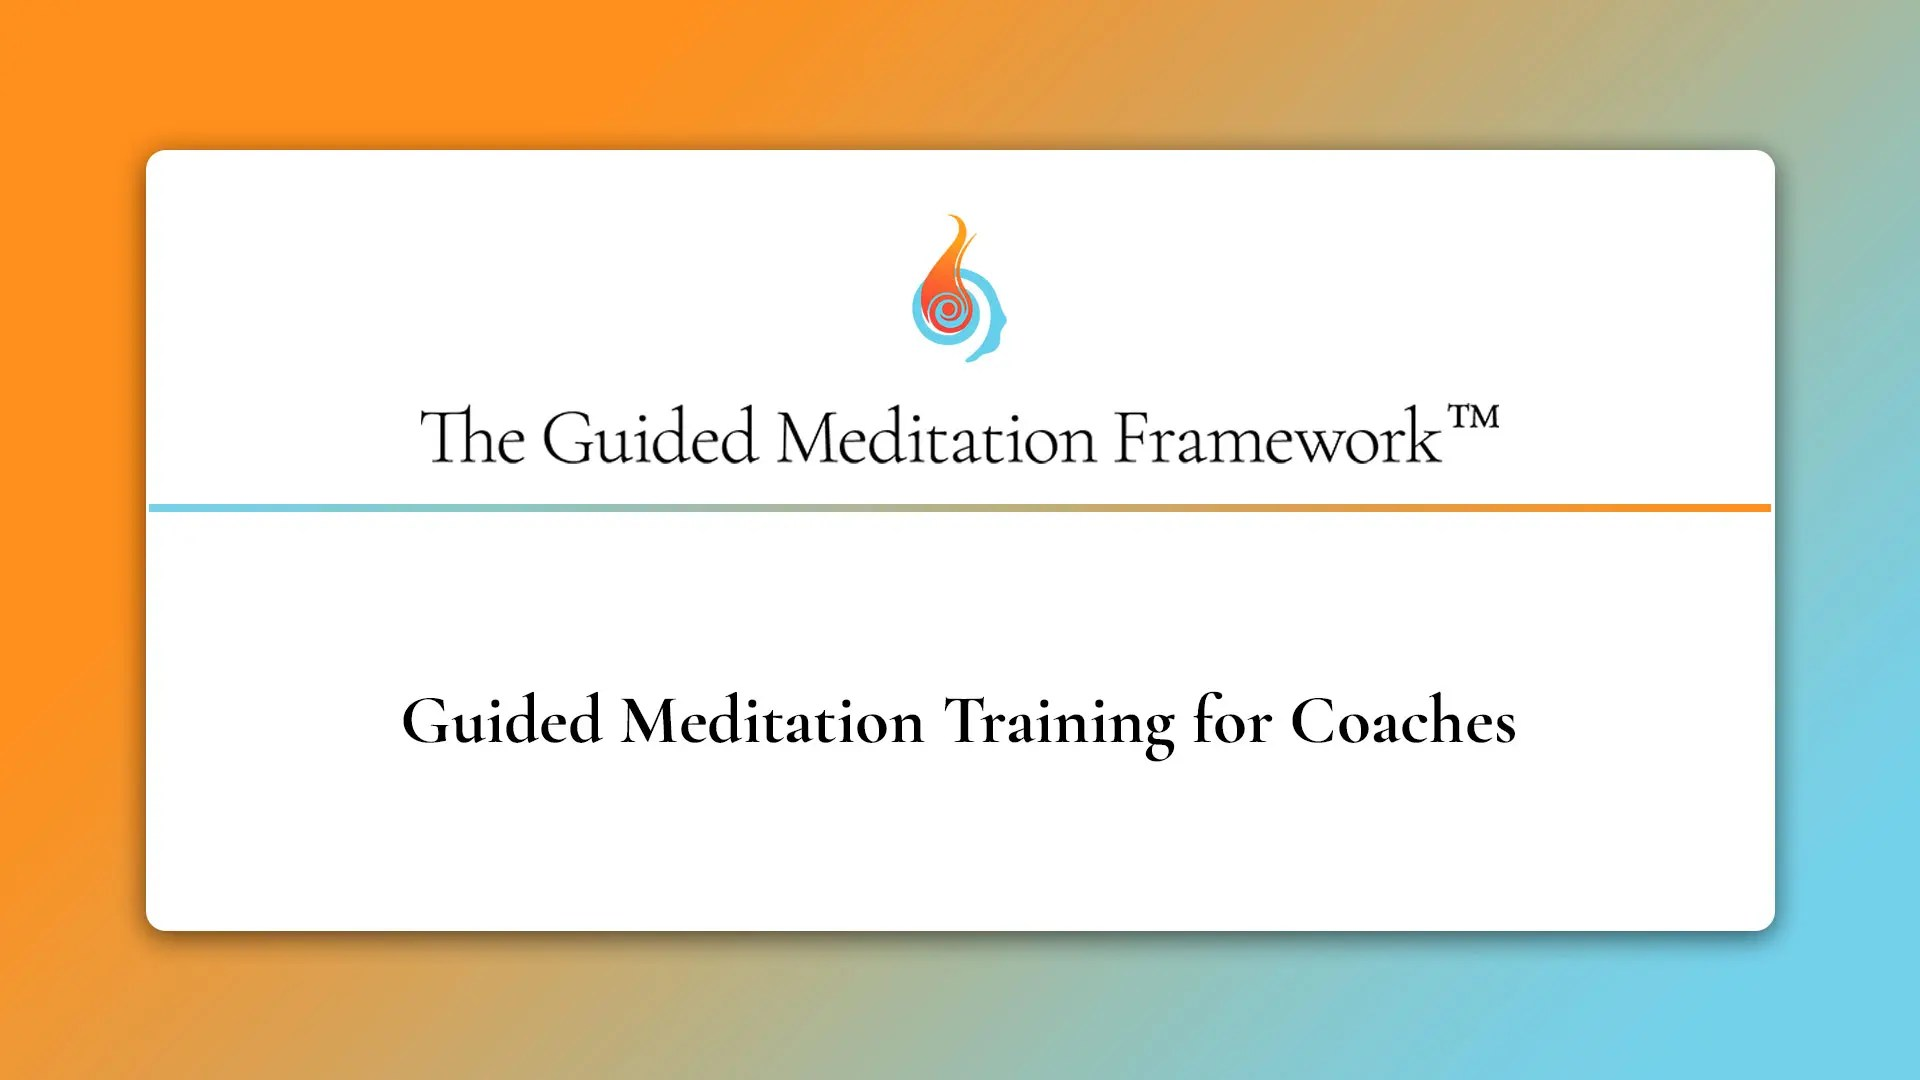 The Guided Meditation Framework for coaches